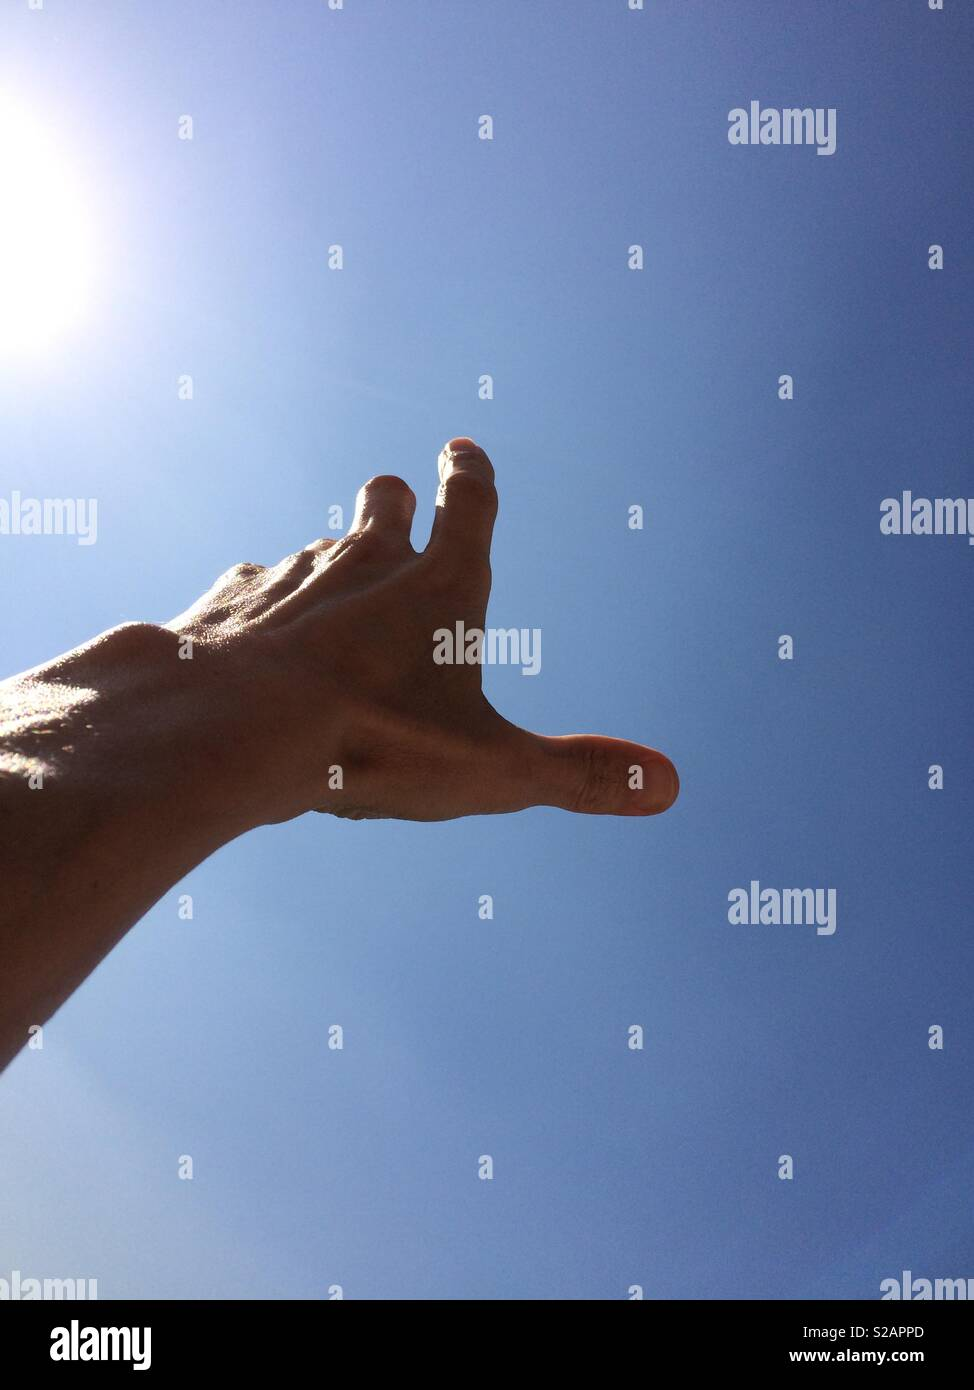 Touching the sky. - Stock Image